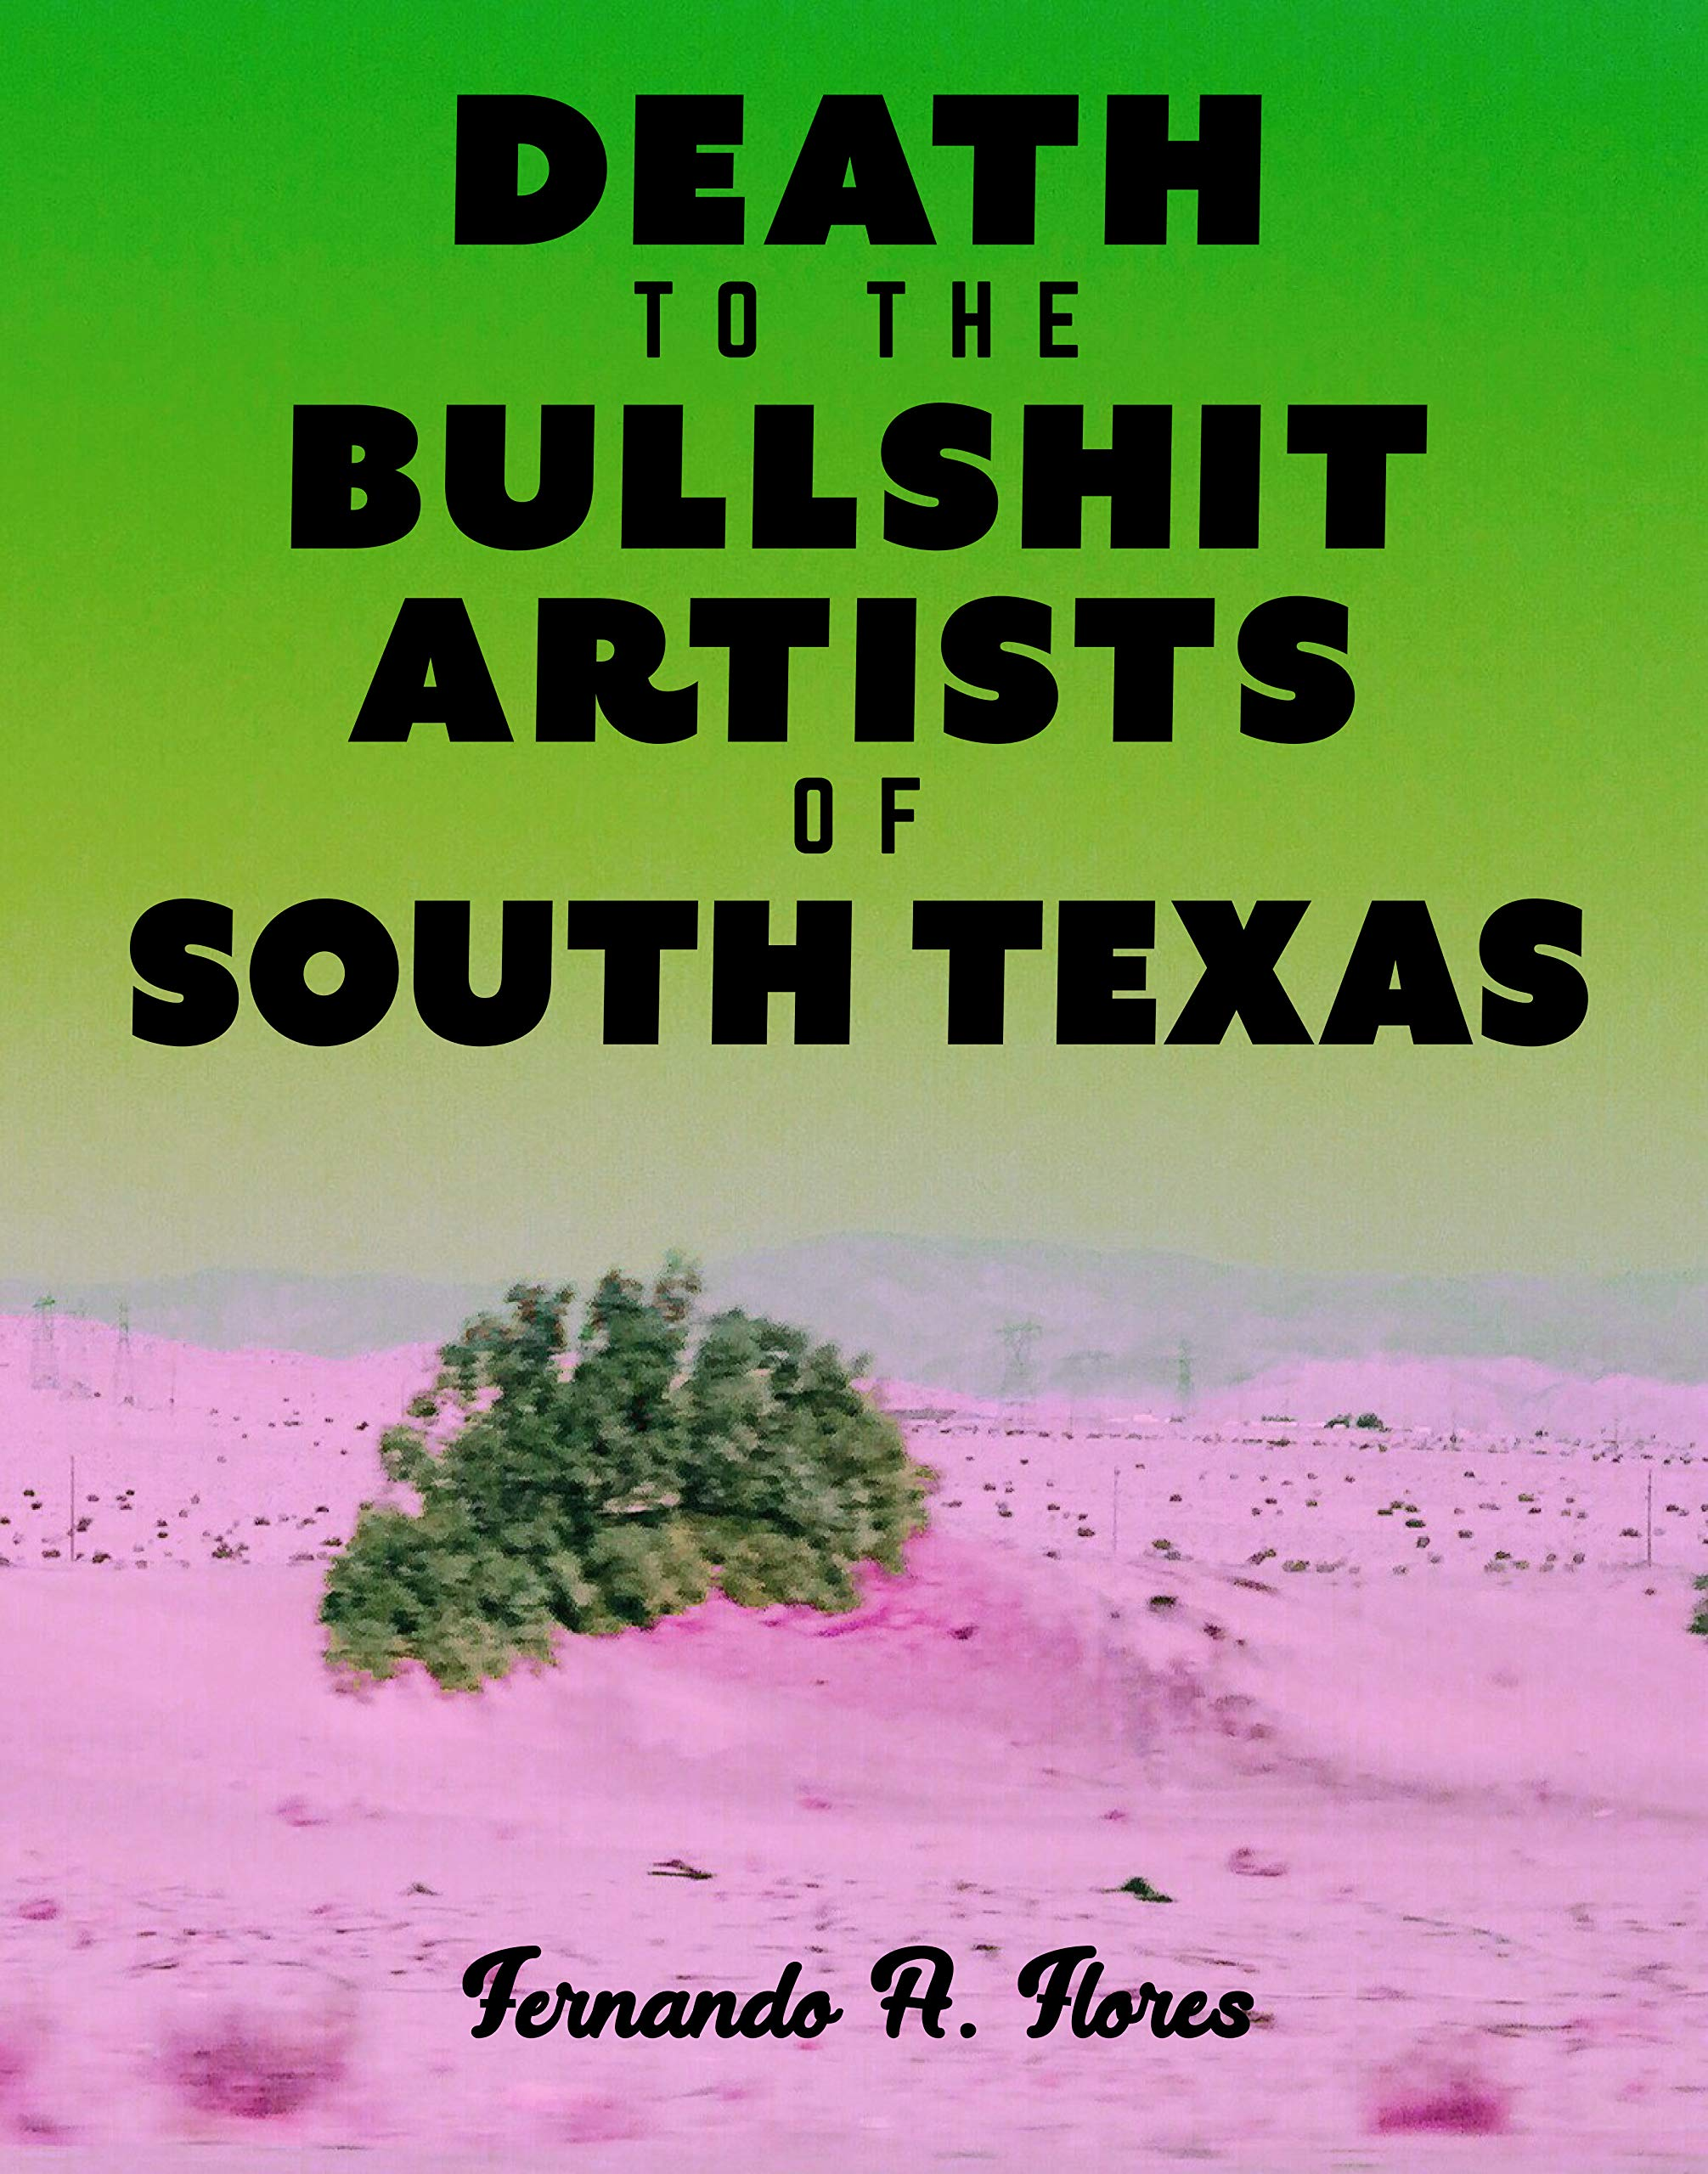 Death to the Bullshit Artists of South Texas